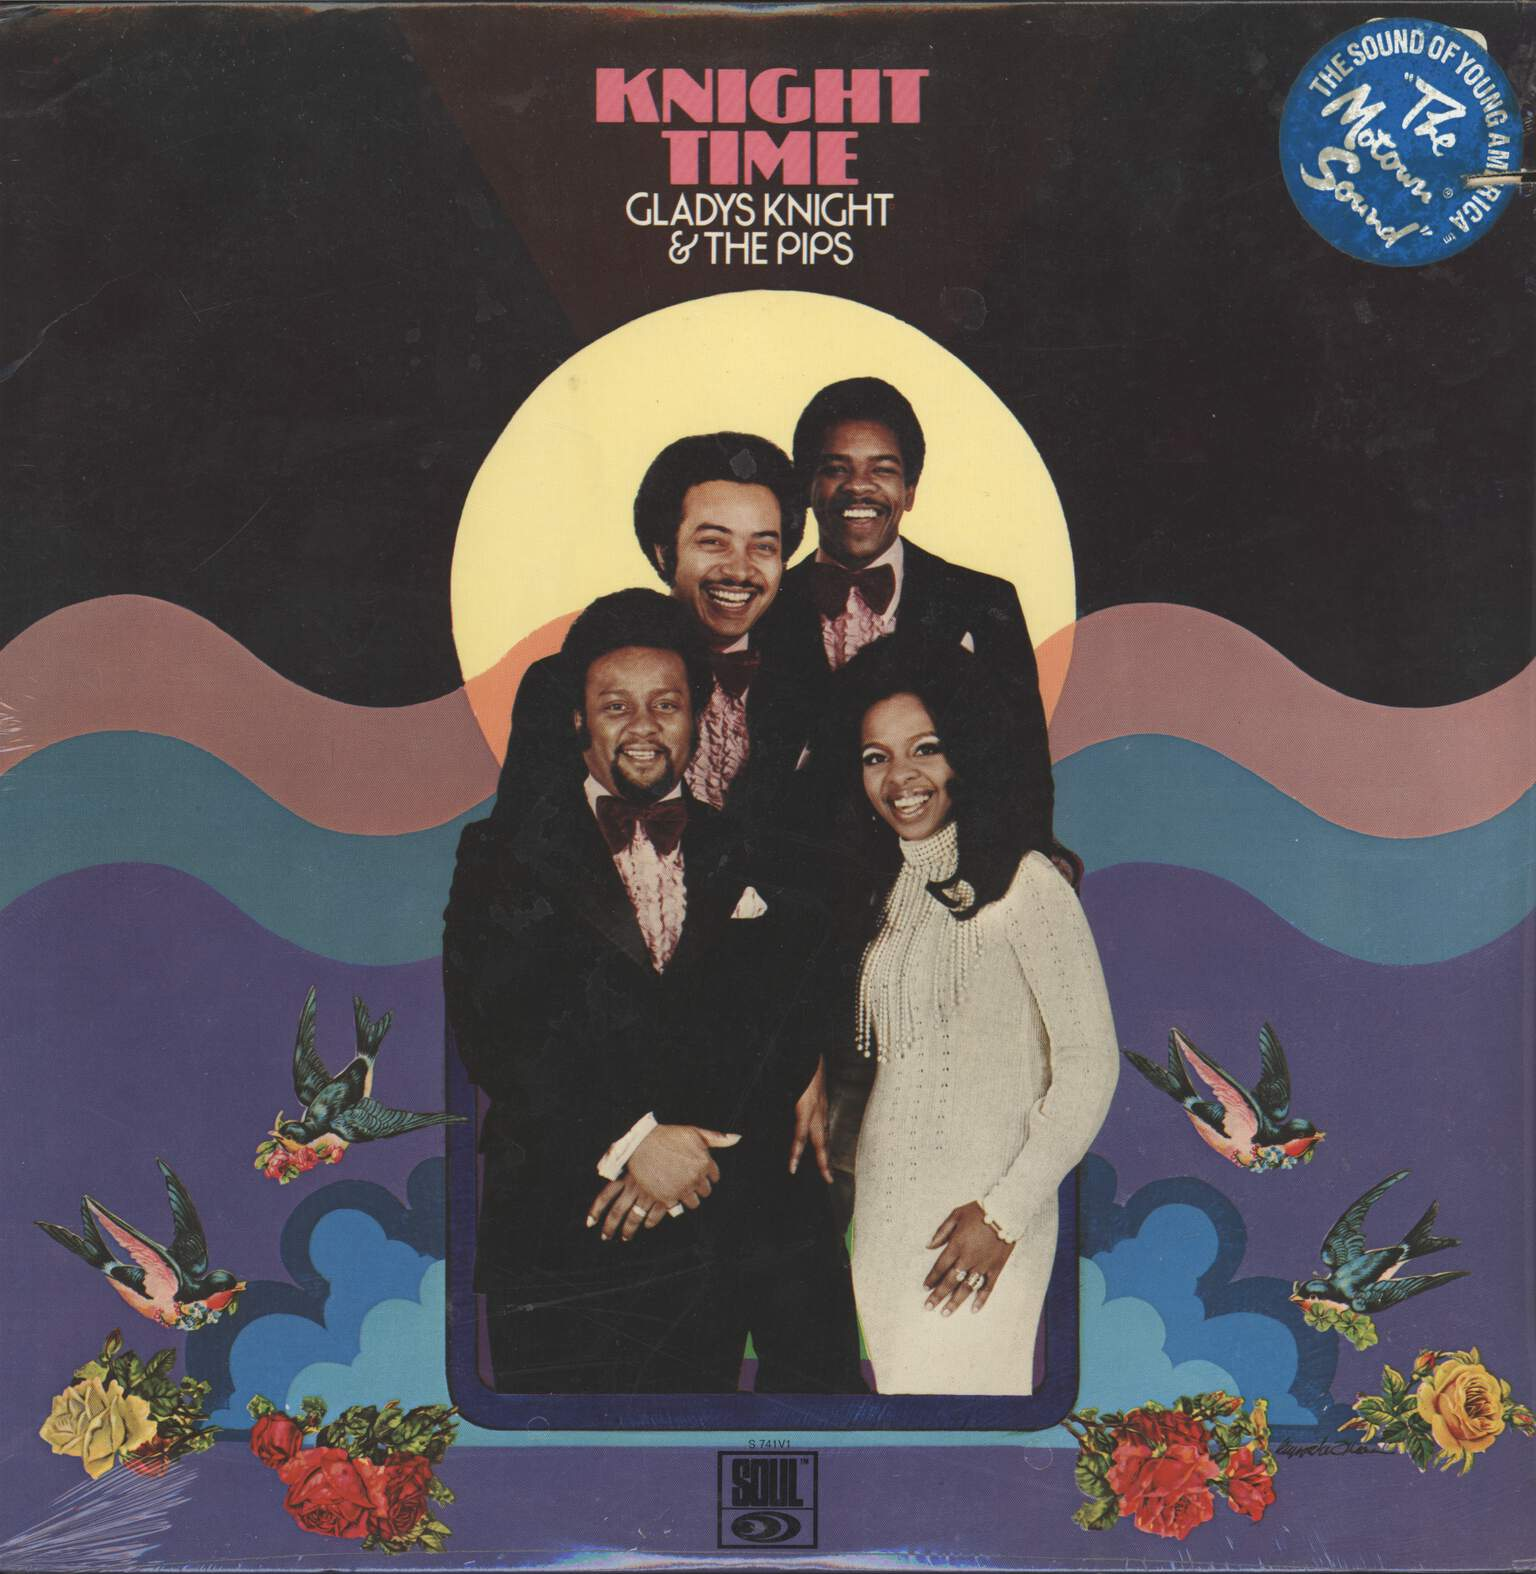 Gladys Knight And The Pips: Knight Time, LP (Vinyl)